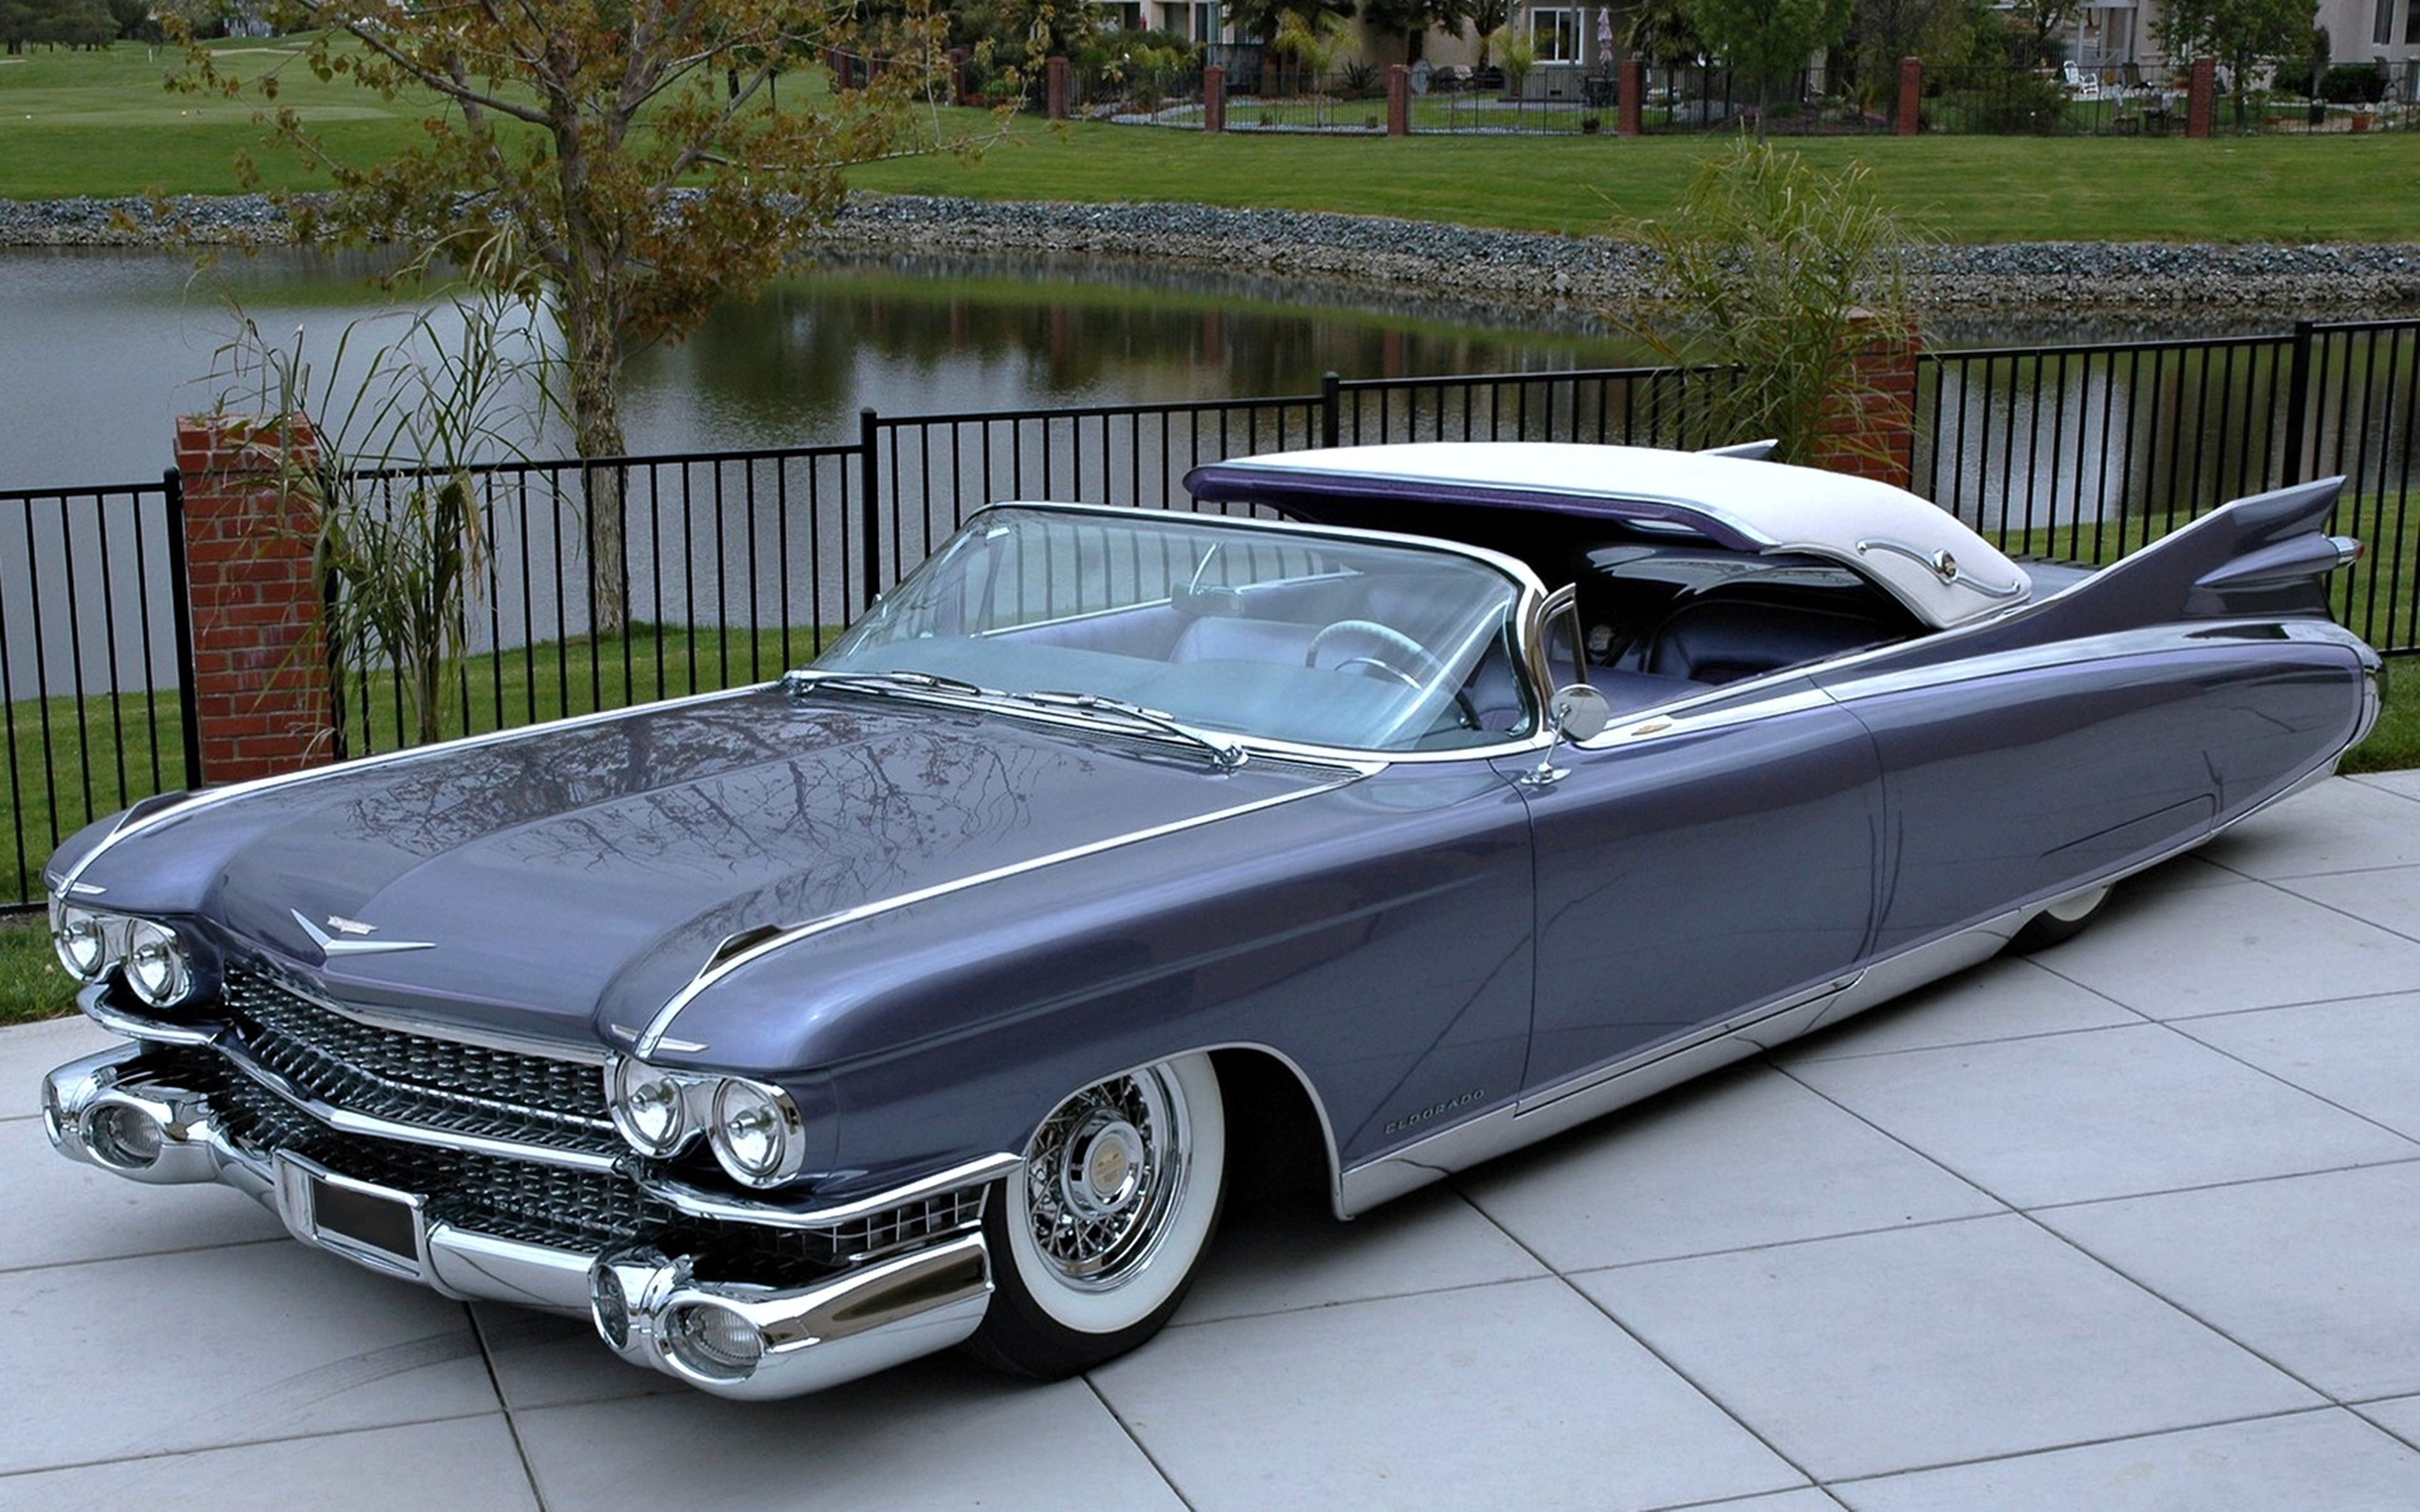 4e0db3a6e59b84892d1ea28fb0d52808 Cool Review About 1968 Cadillac